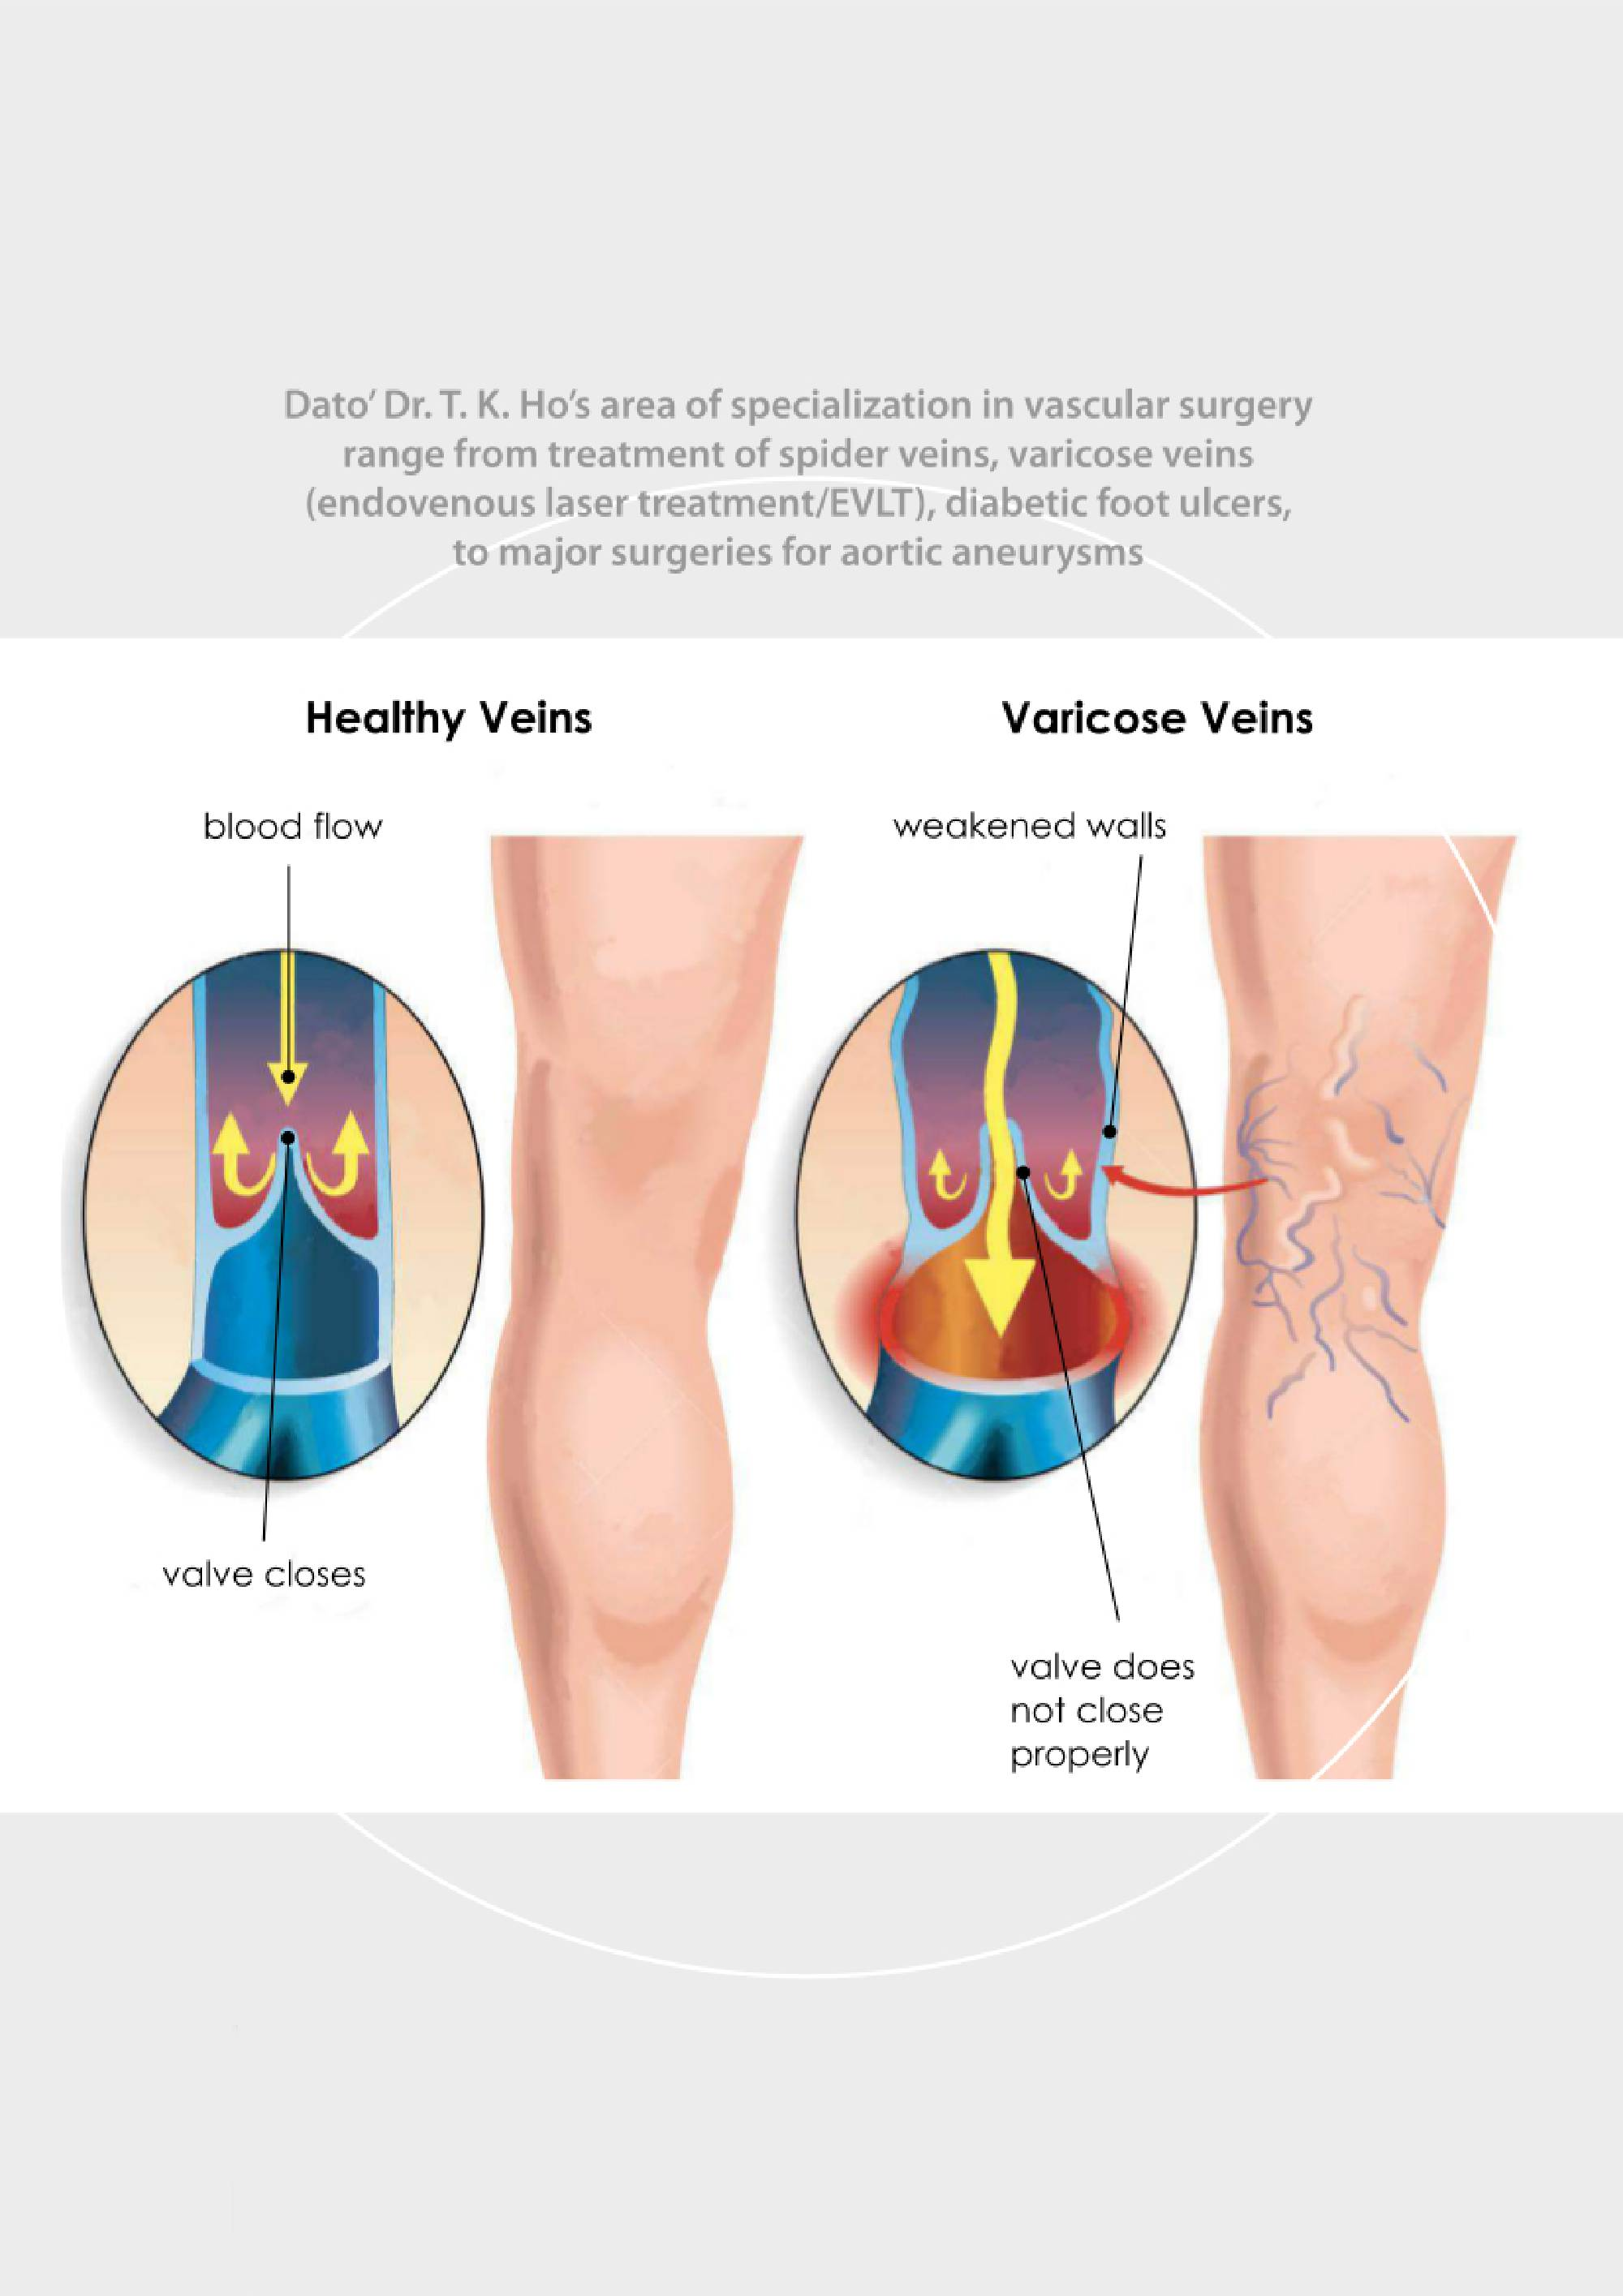 About Vascular Surgery